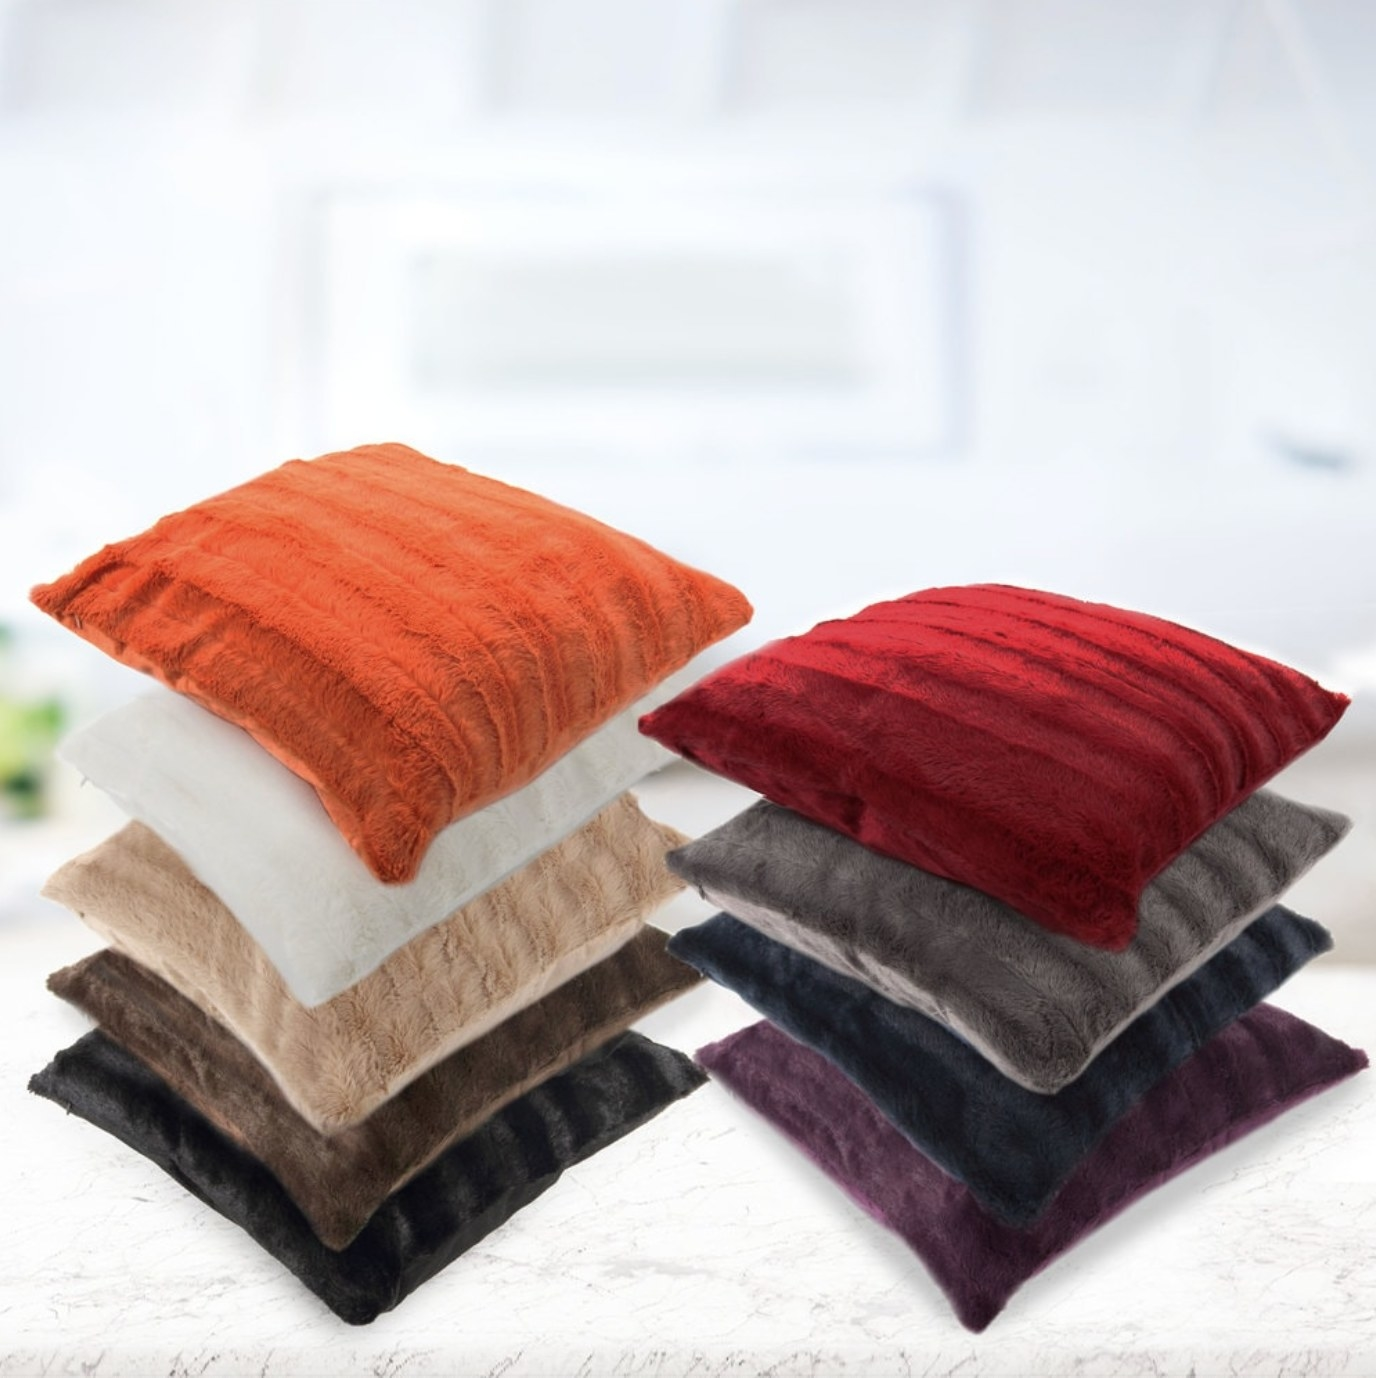 The faux fur throw pillows in multiple colors